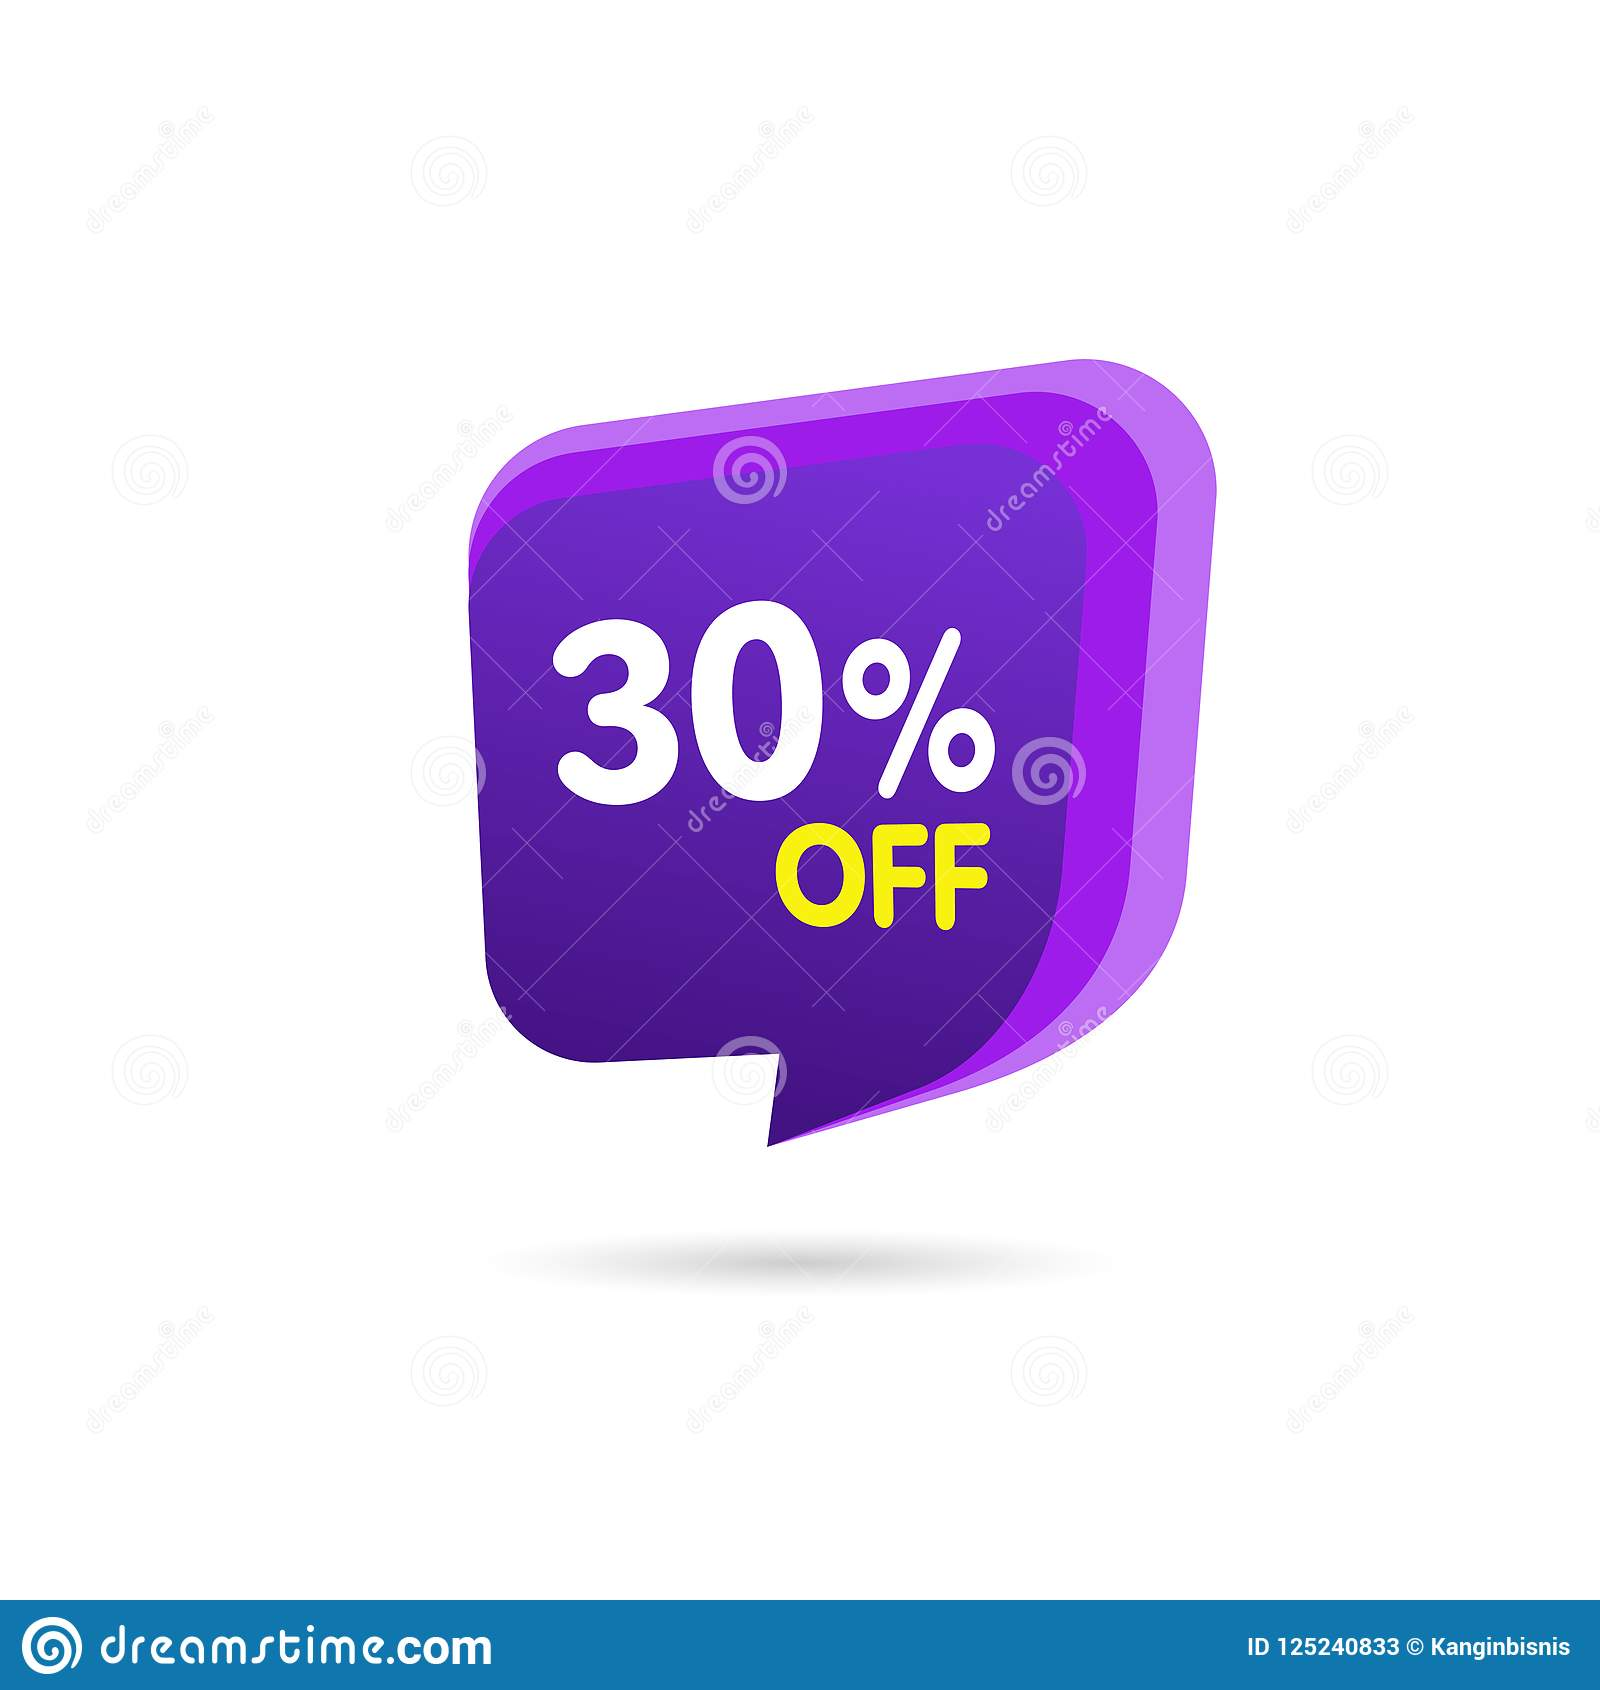 Sale Discount Banner. Discount offer price tag. Special offer sale purple label. Vector Modern Sticker Illustration. Isolated Back